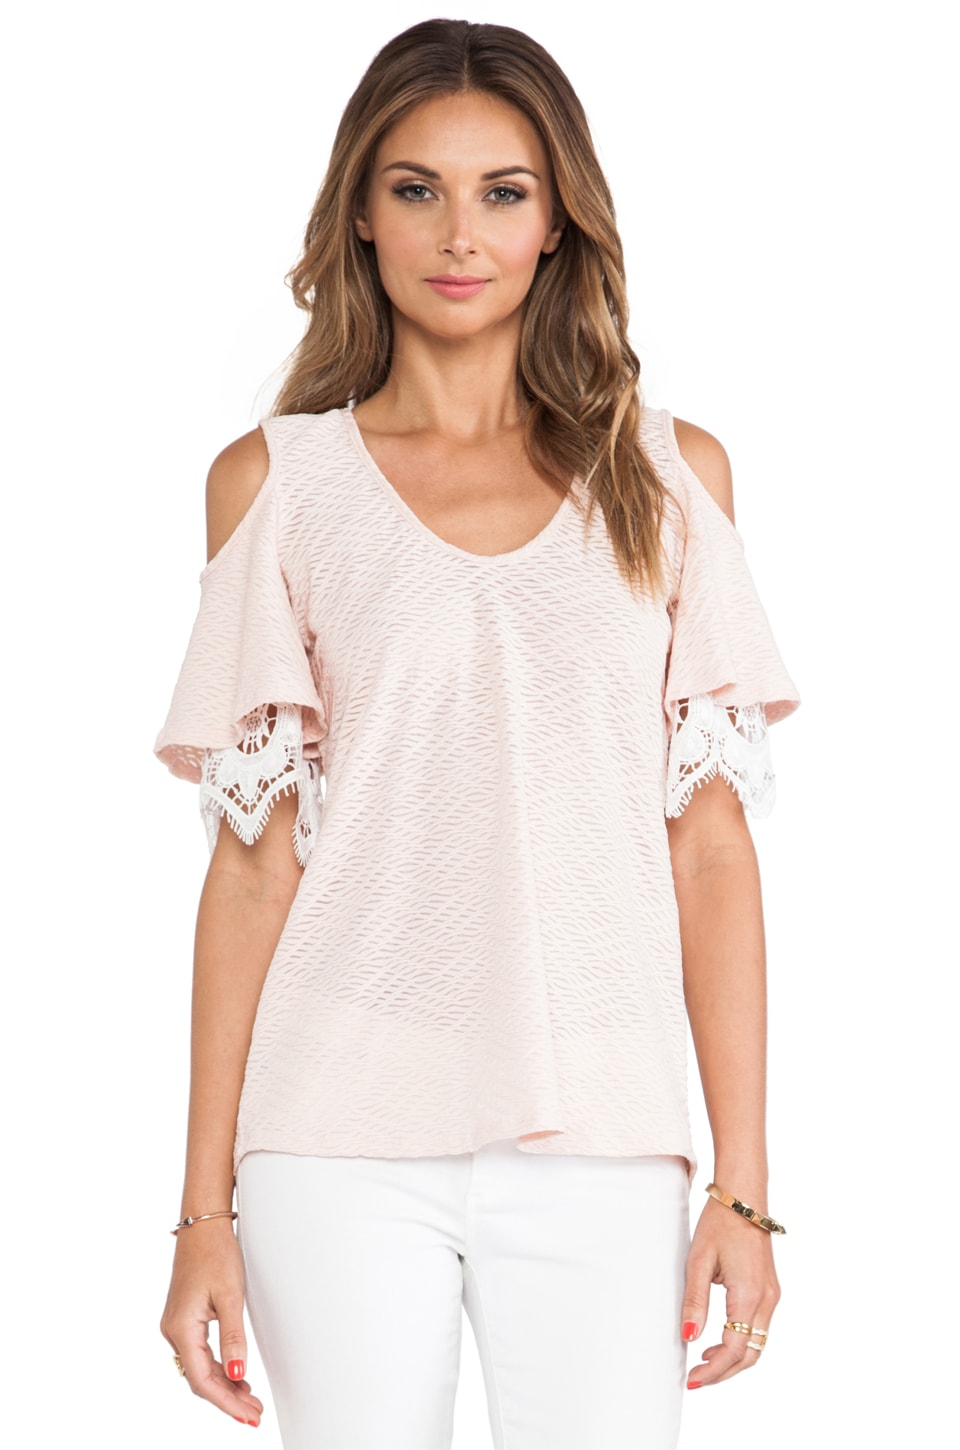 VAVA by Joy Han Caitlyn Open Shoulder Top in Peach